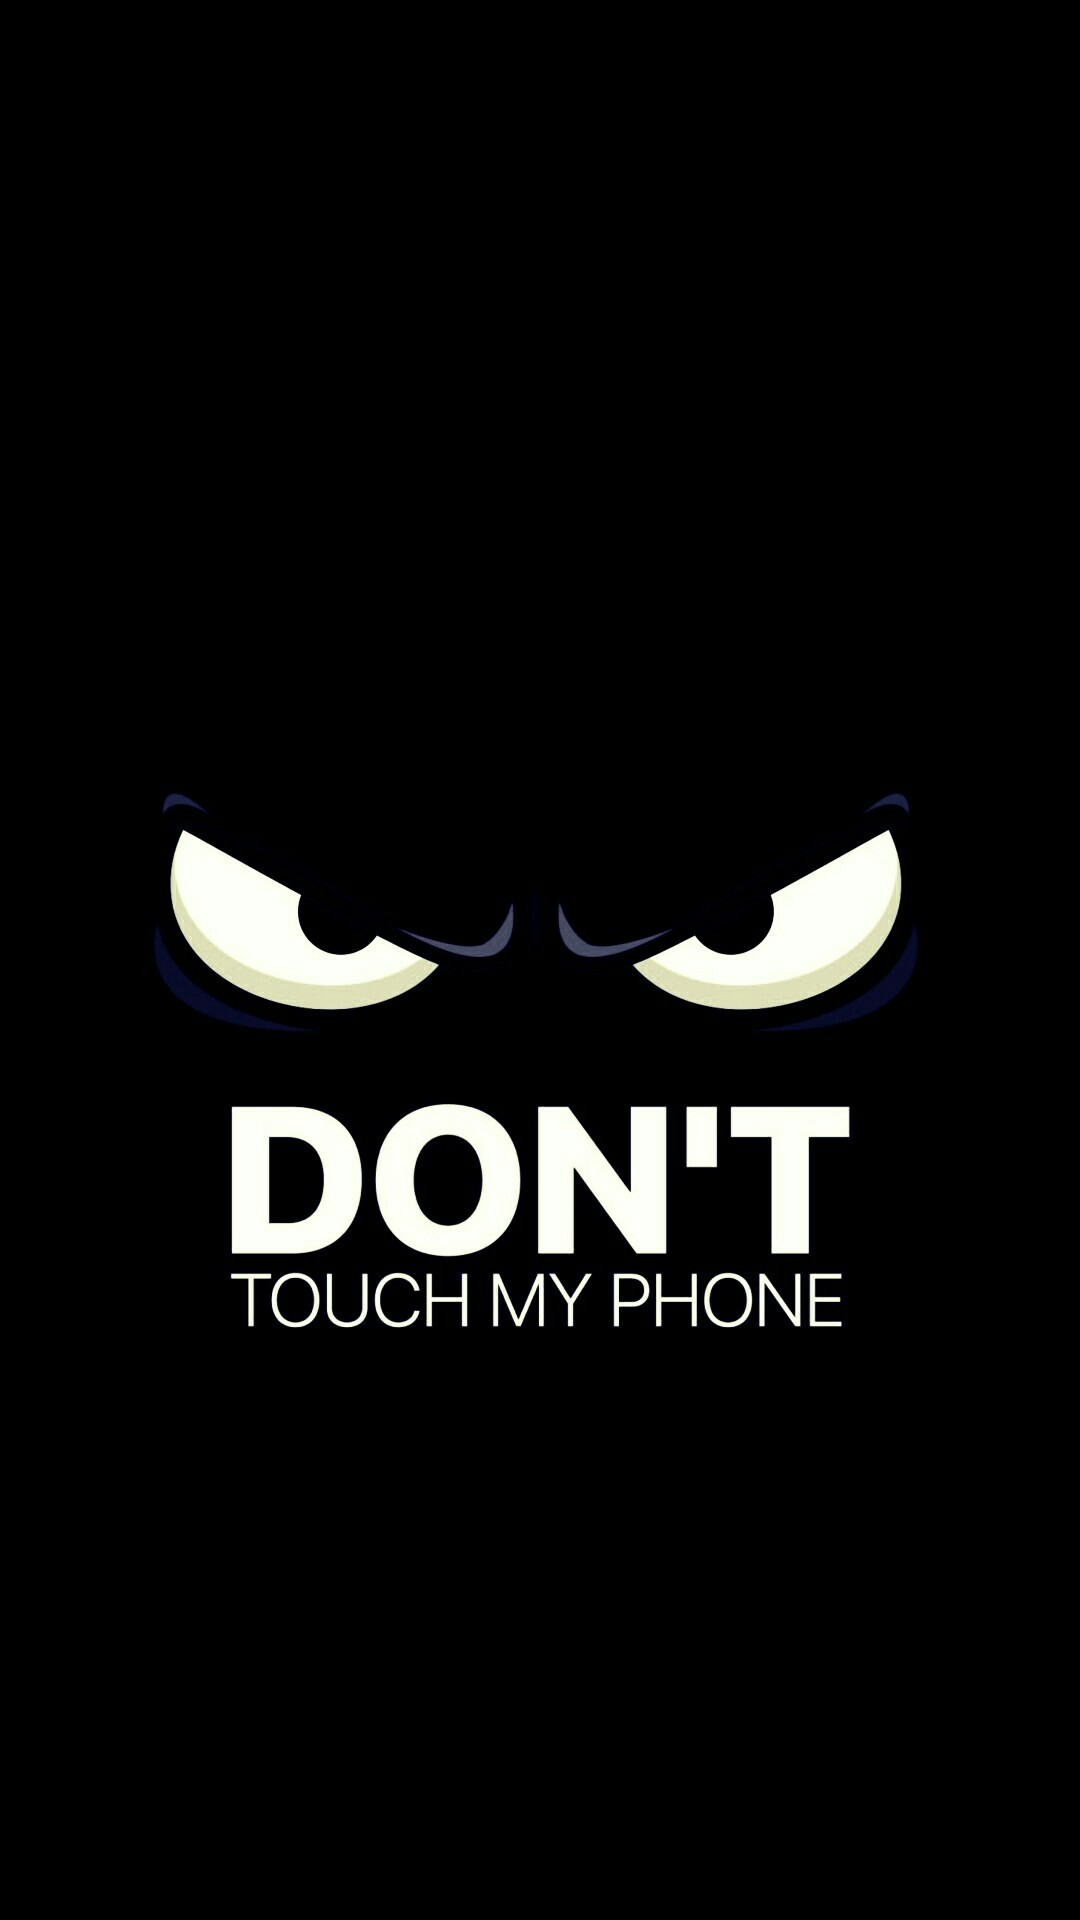 funny wallpapers for phones 65 images